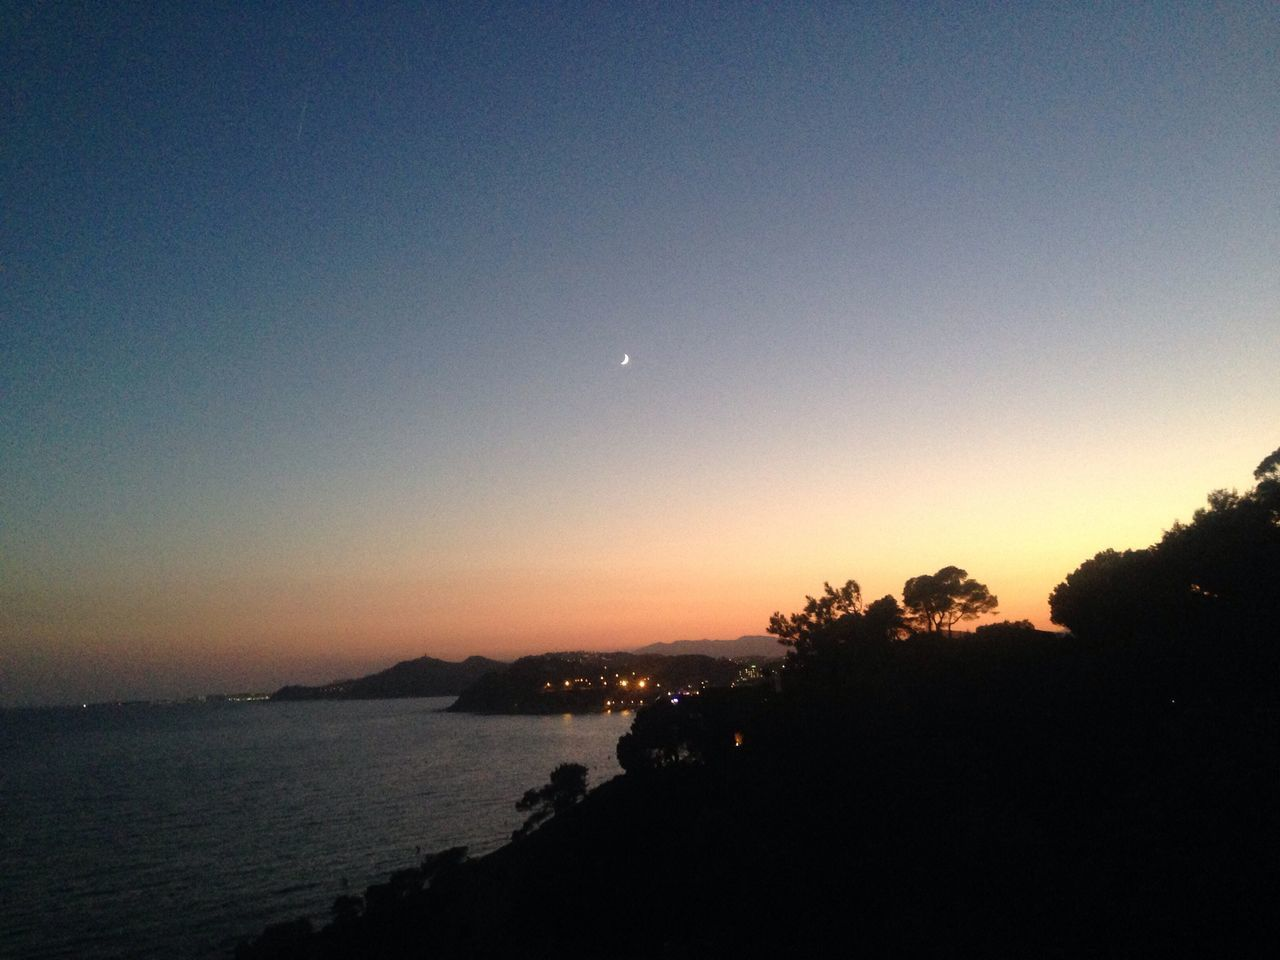 moon, sunset, silhouette, scenics, nature, beauty in nature, tranquil scene, sky, tranquility, idyllic, clear sky, dusk, outdoors, night, crescent, no people, water, sea, half moon, astronomy, tree